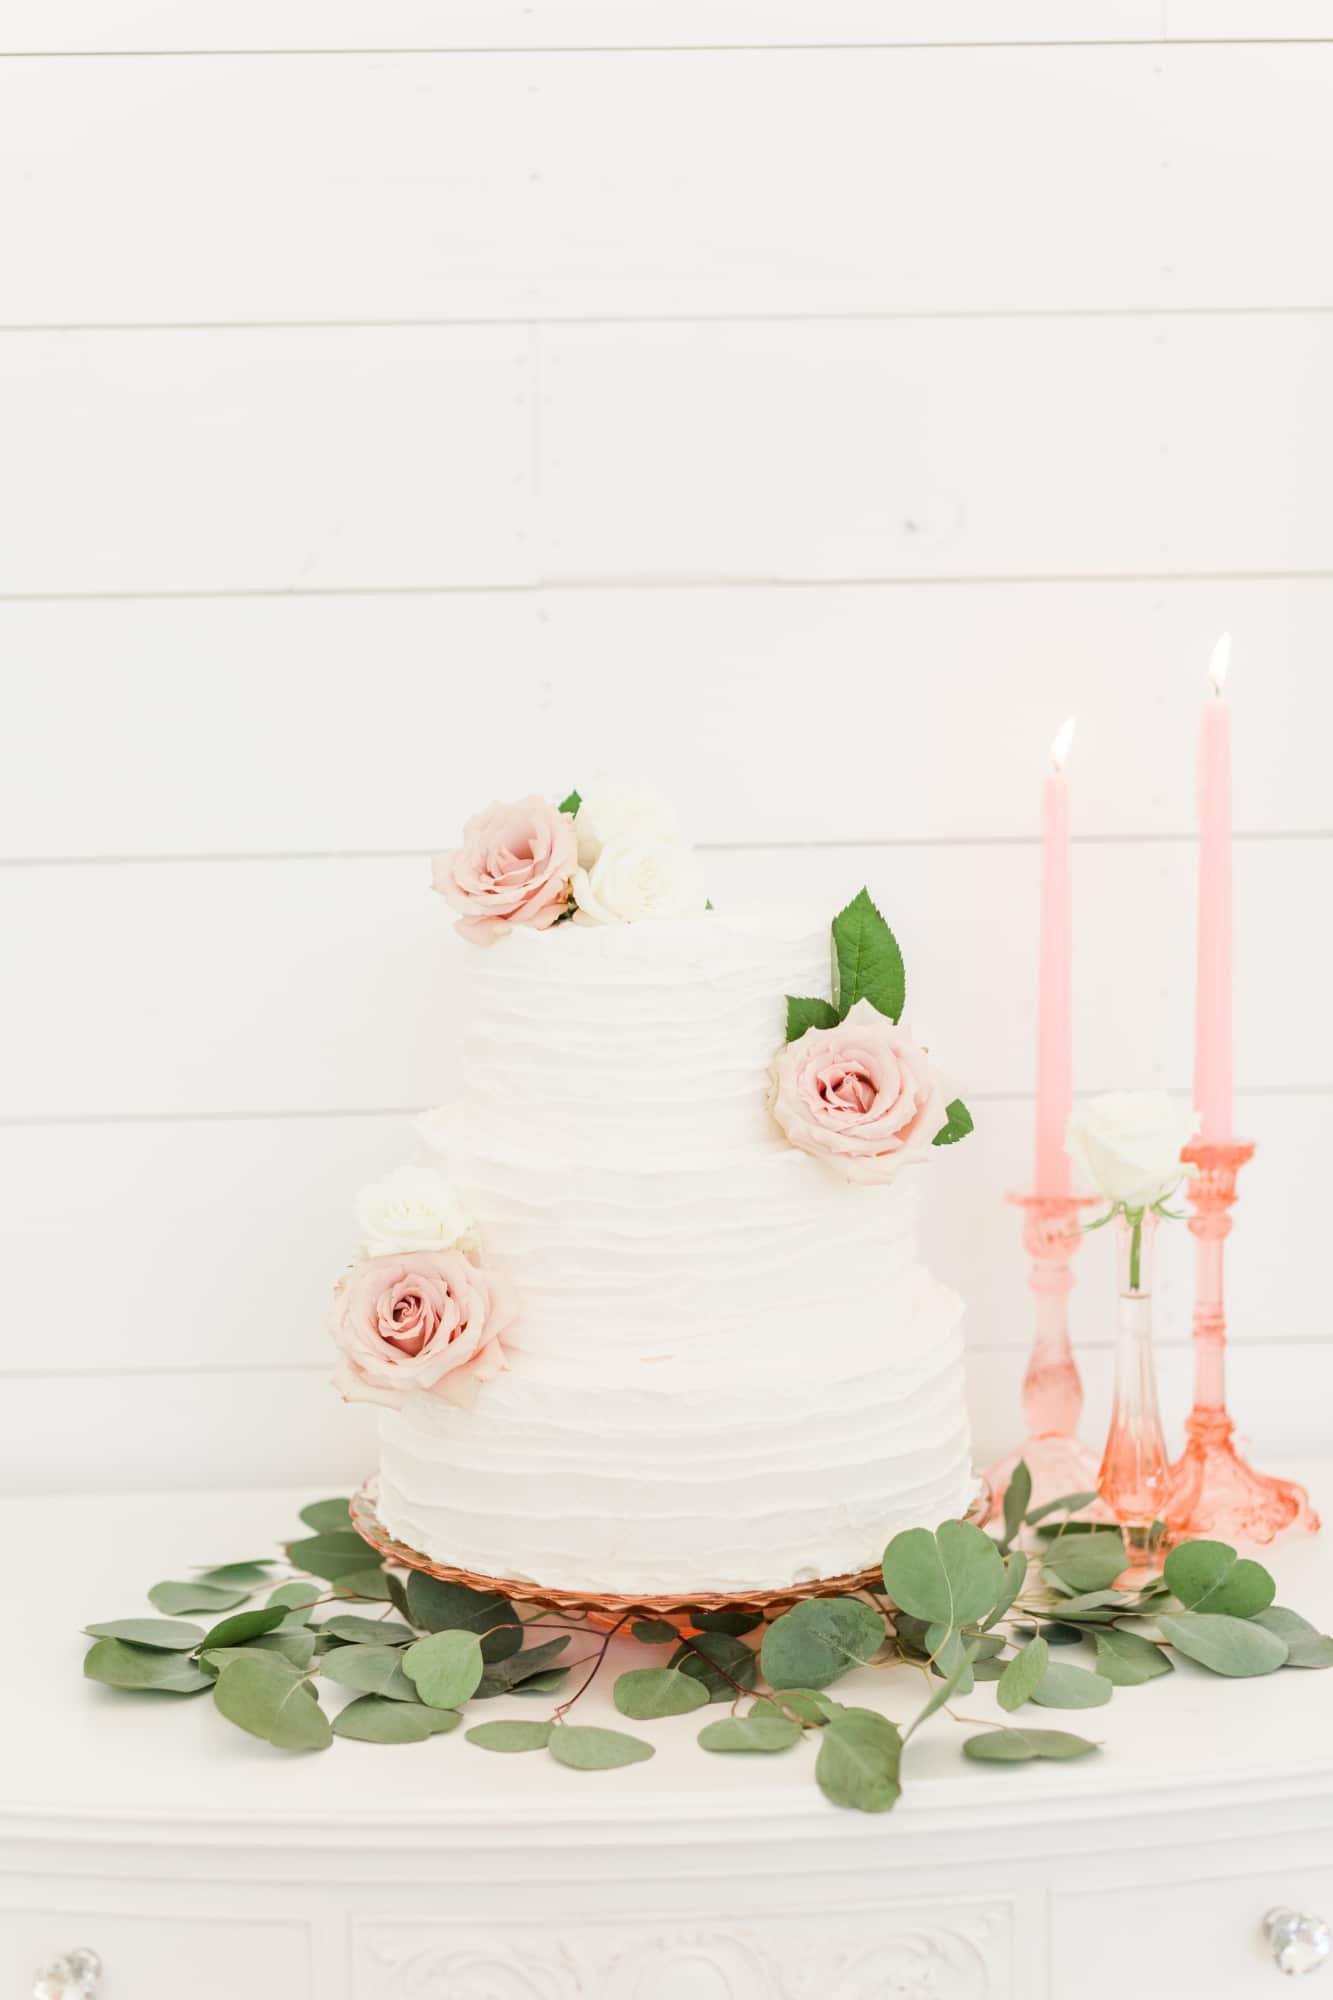 white wedding cake on stand with greenery and floral design on cake